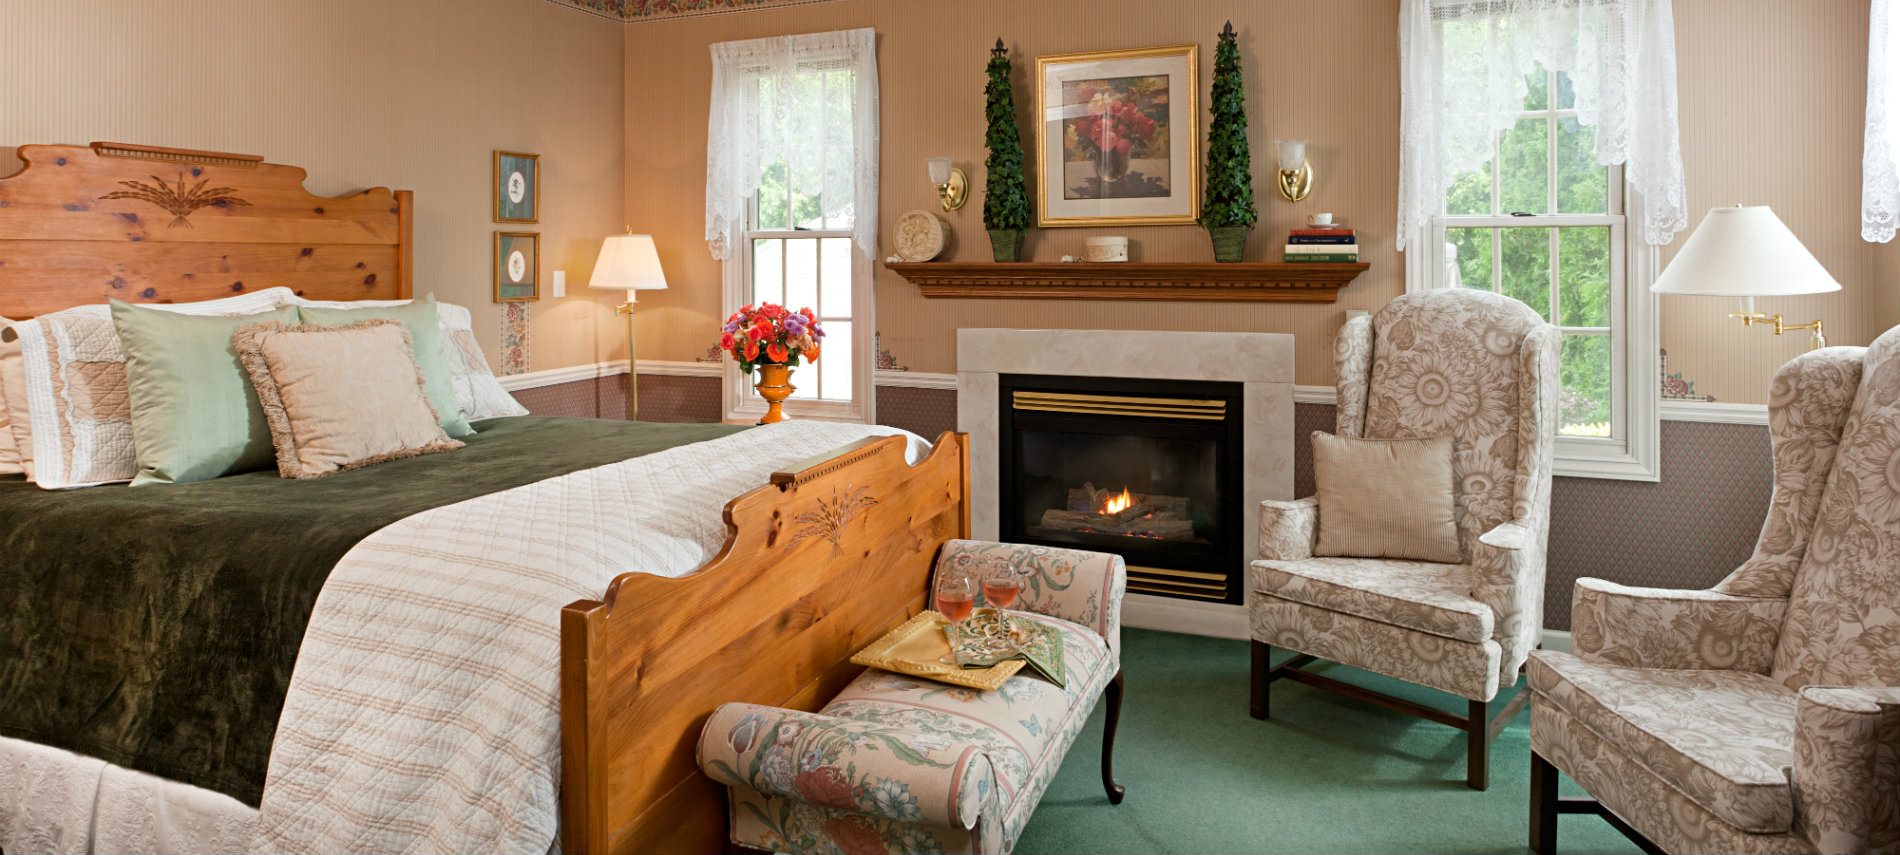 King sized bed wooden head and footboards, green comforter, two cream chairs by fireplace between windows with lace sheers.